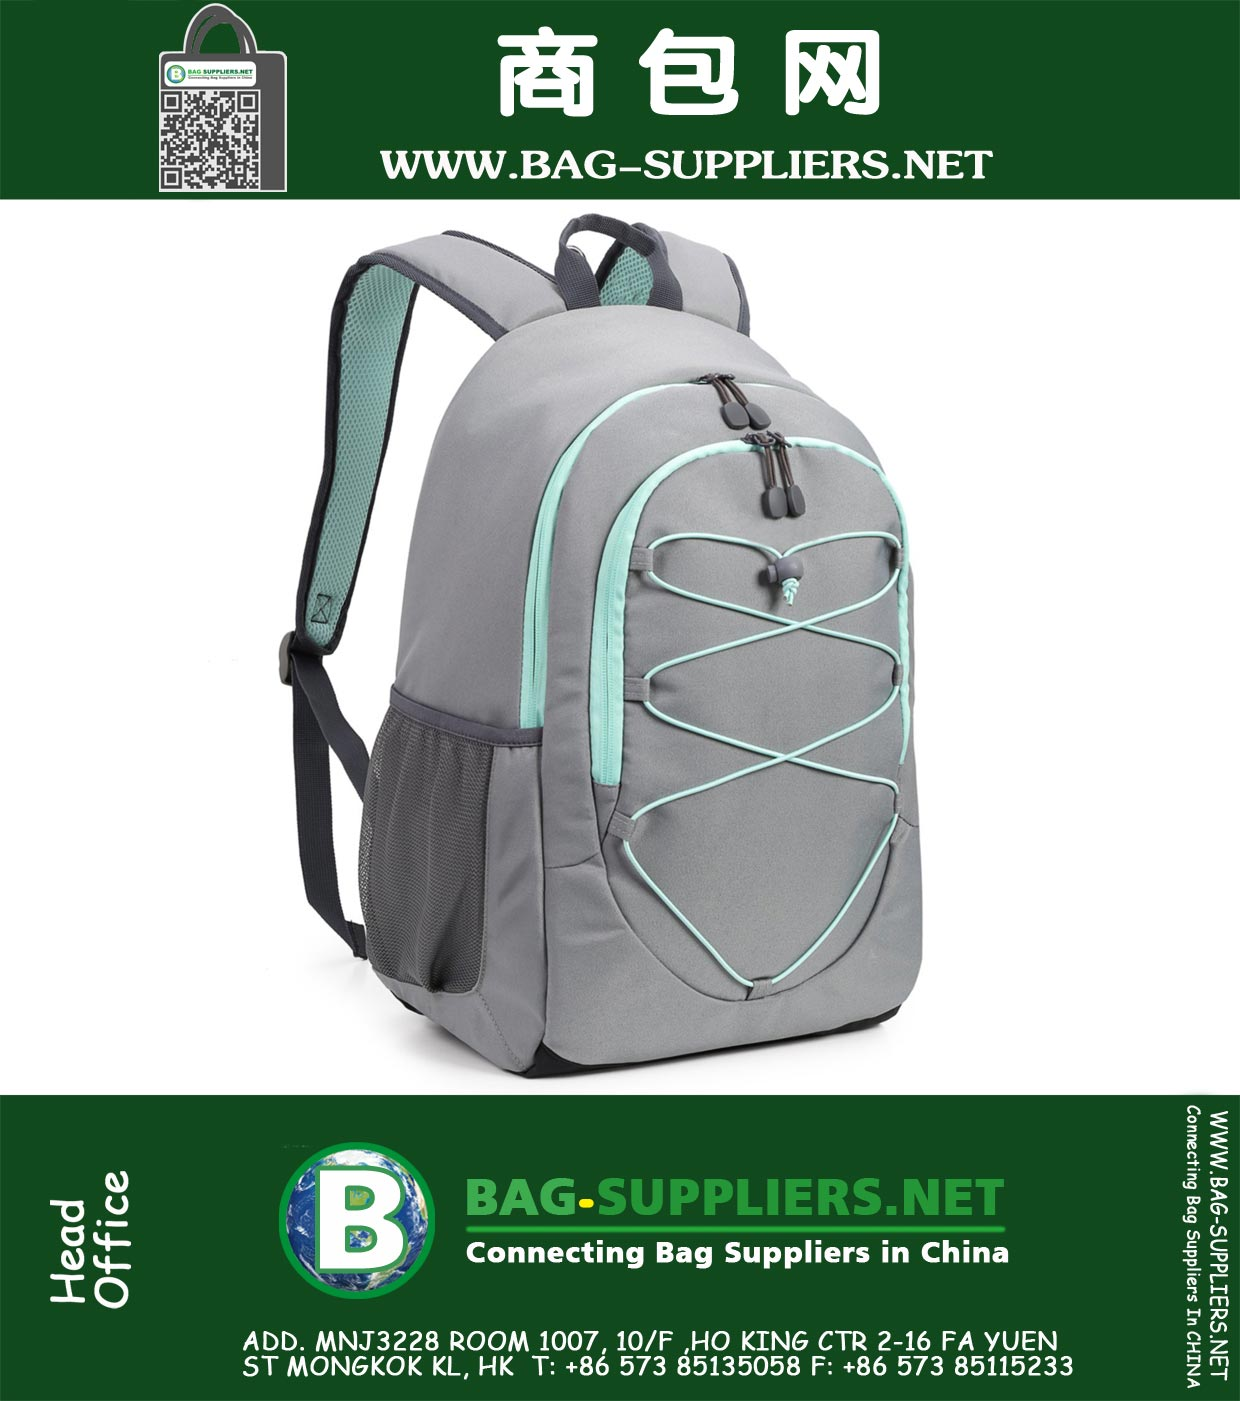 Cooler Backpack Water-resistant Lightweight Backpack with Cooler Large Capacity 25L for Picnics, Camping, Hiking 28 Cans, ZY-TLCA0081